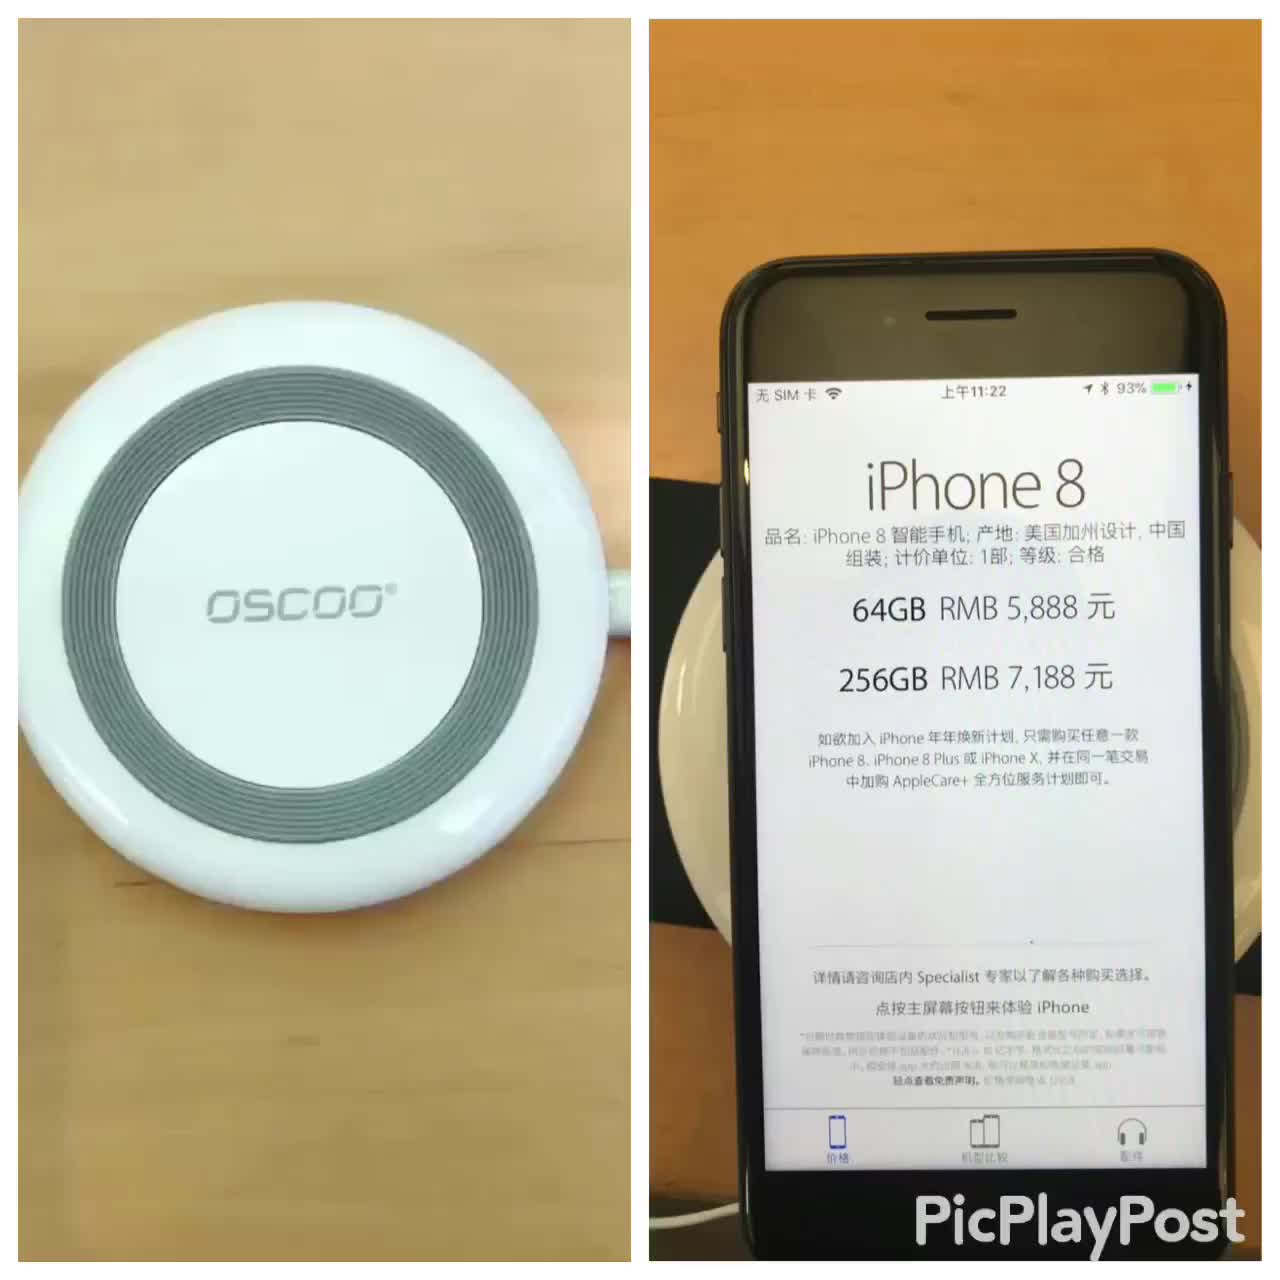 OSCOO Wireless charger,by Ailun,Ultra-Slim&Protable,Slip-Proof Pad,Universal for All Qi-Enabled Devices,Galaxy S7/S7 Edge,S6/S6